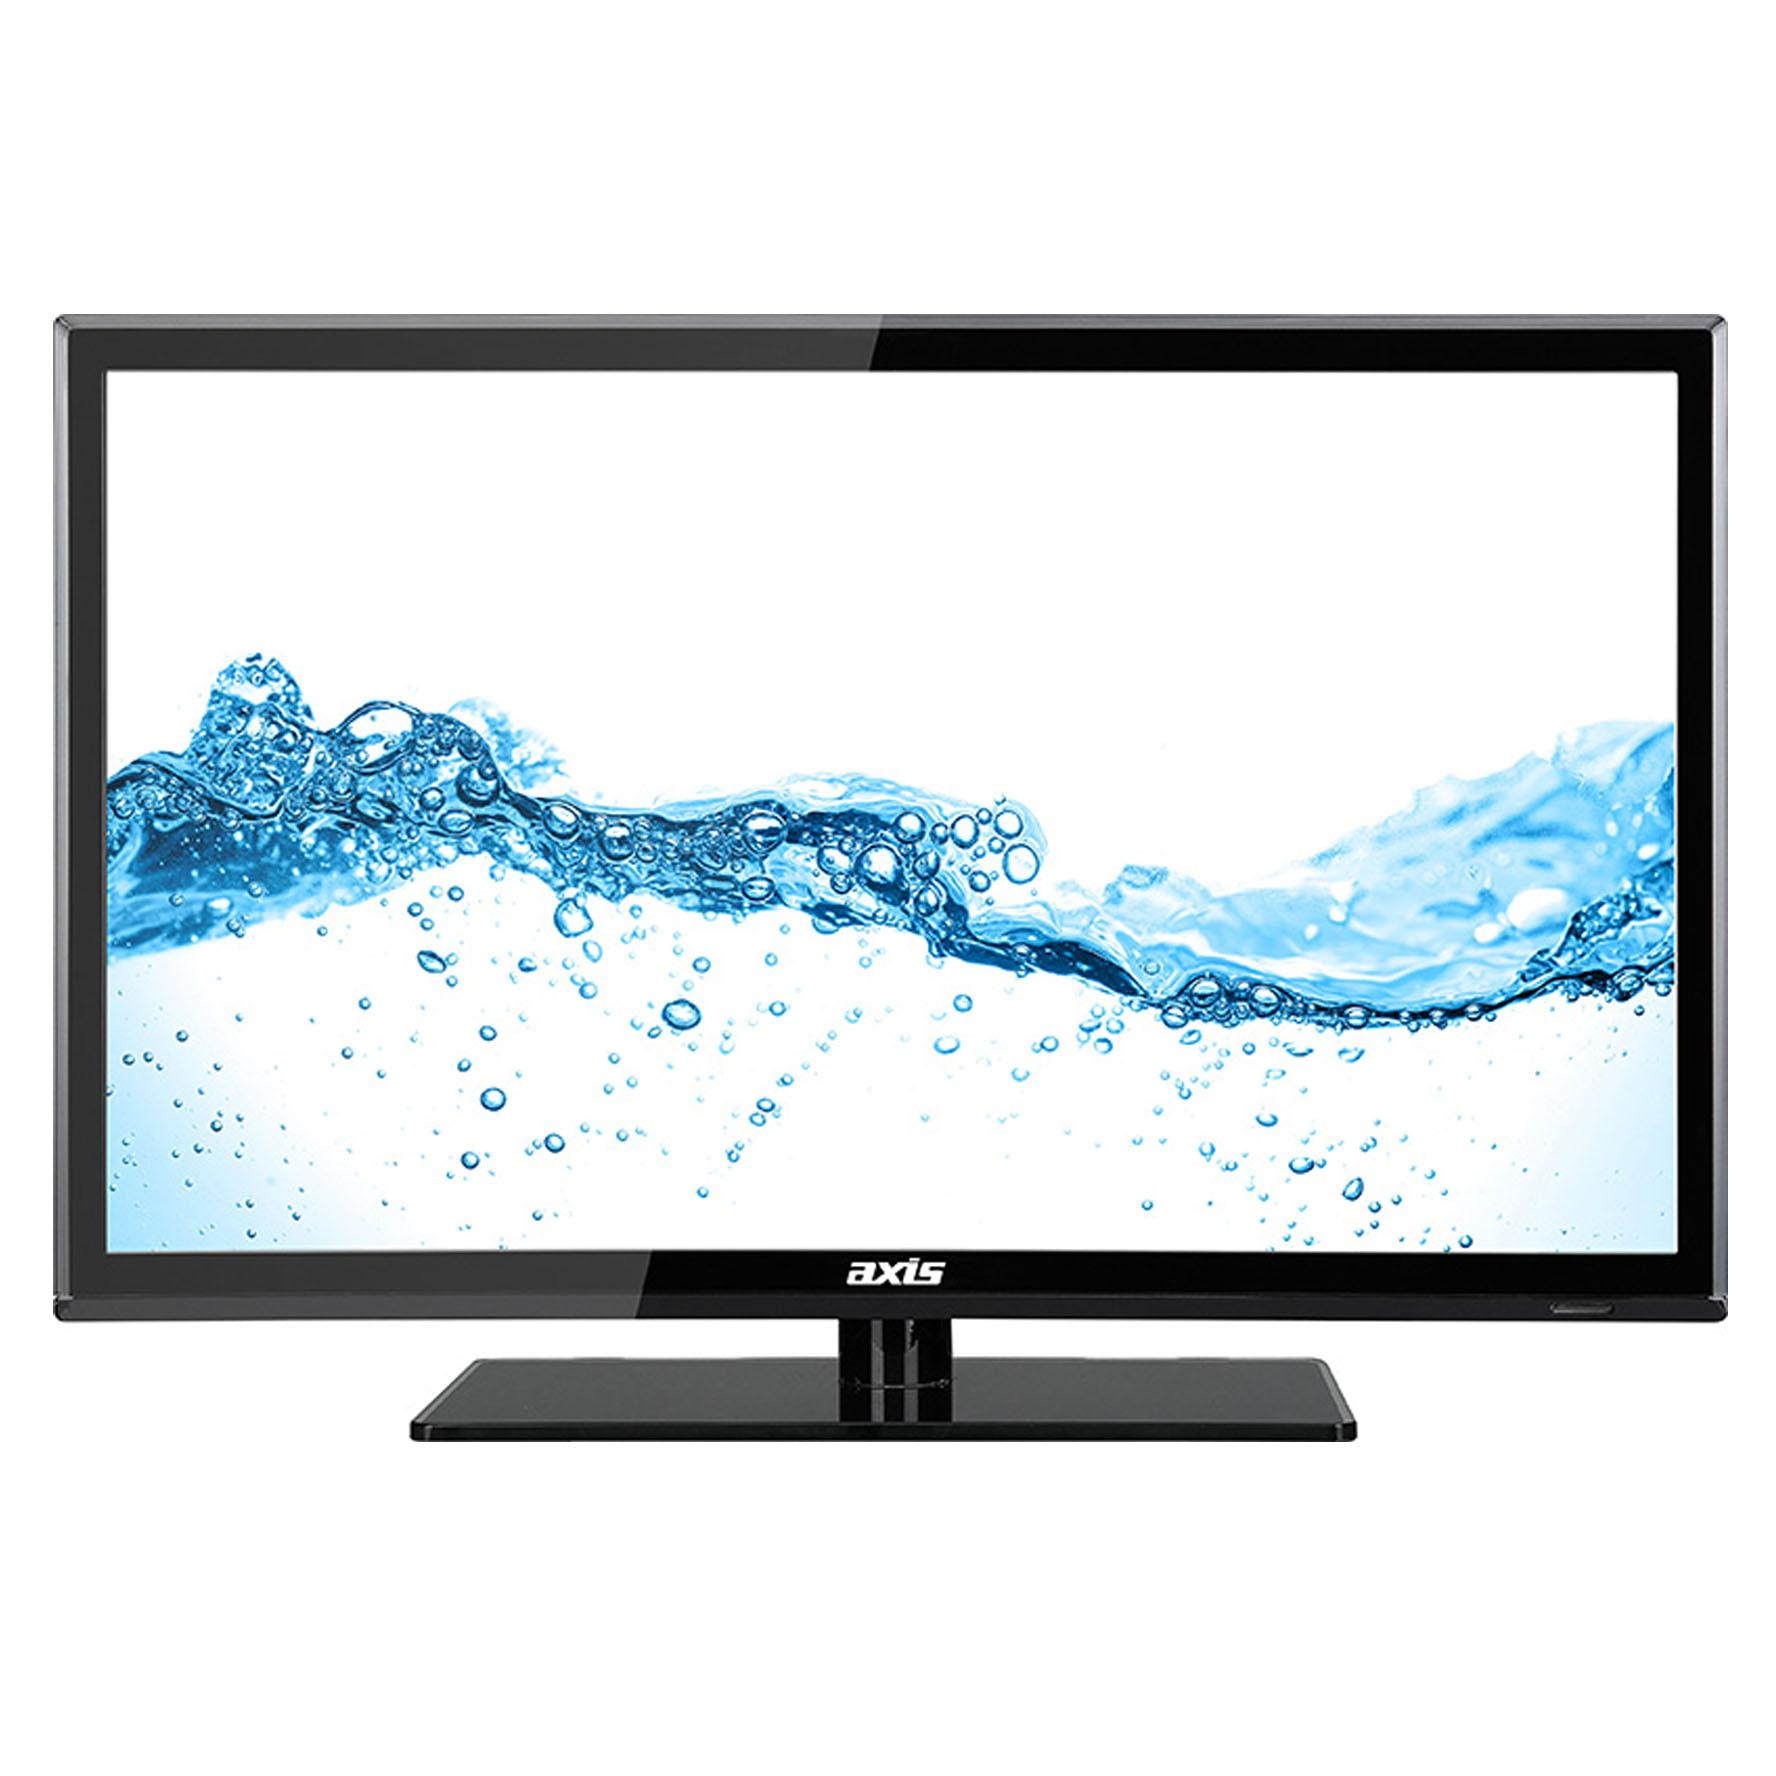 axis ax1522 series 2 22 dvd tv multimedia home of 12 volt. Black Bedroom Furniture Sets. Home Design Ideas